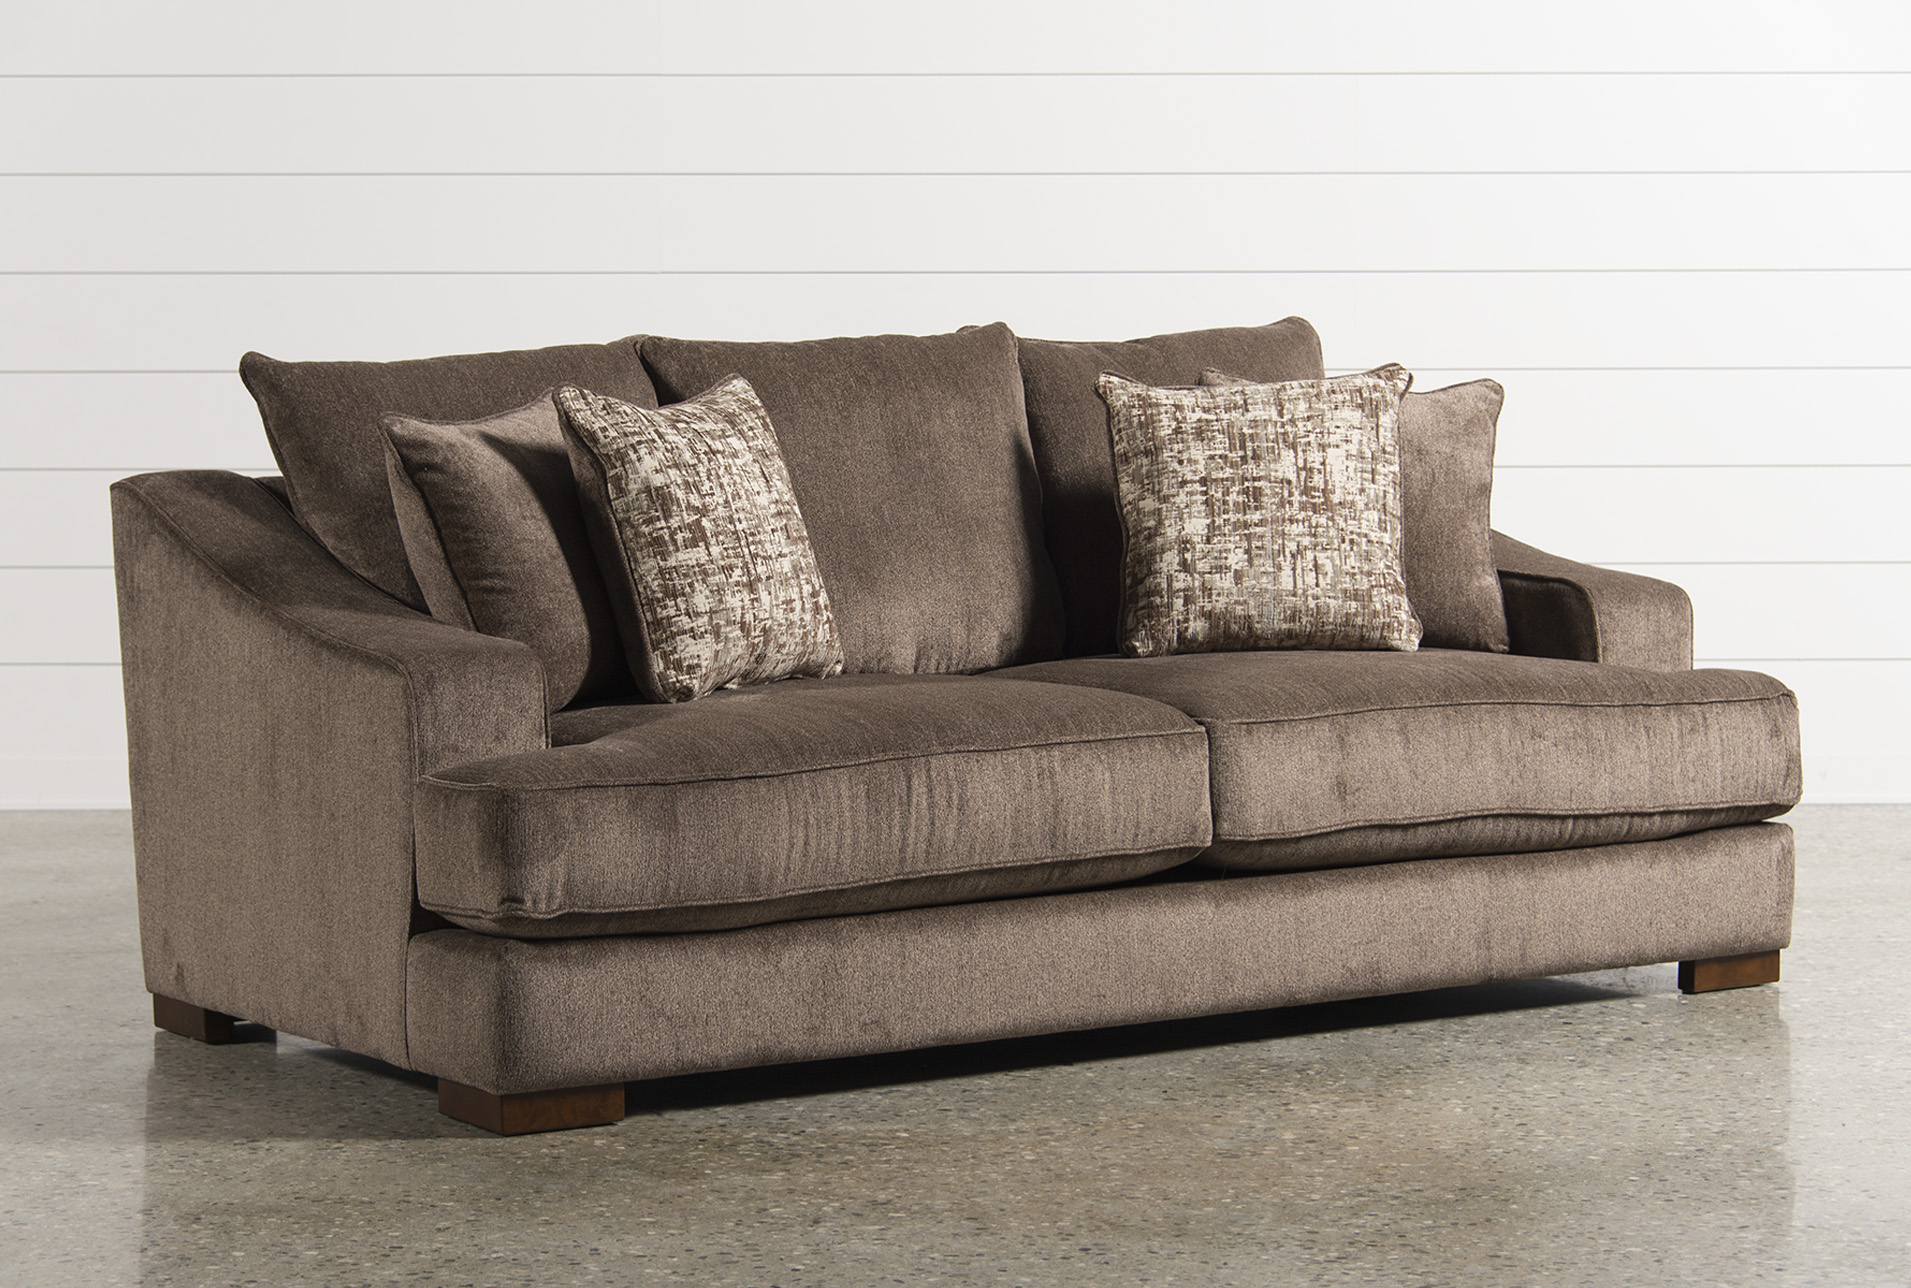 newton queen sleeper living spaces rh livingspaces com Living Spaces Futon living spaces sofa bed sectional